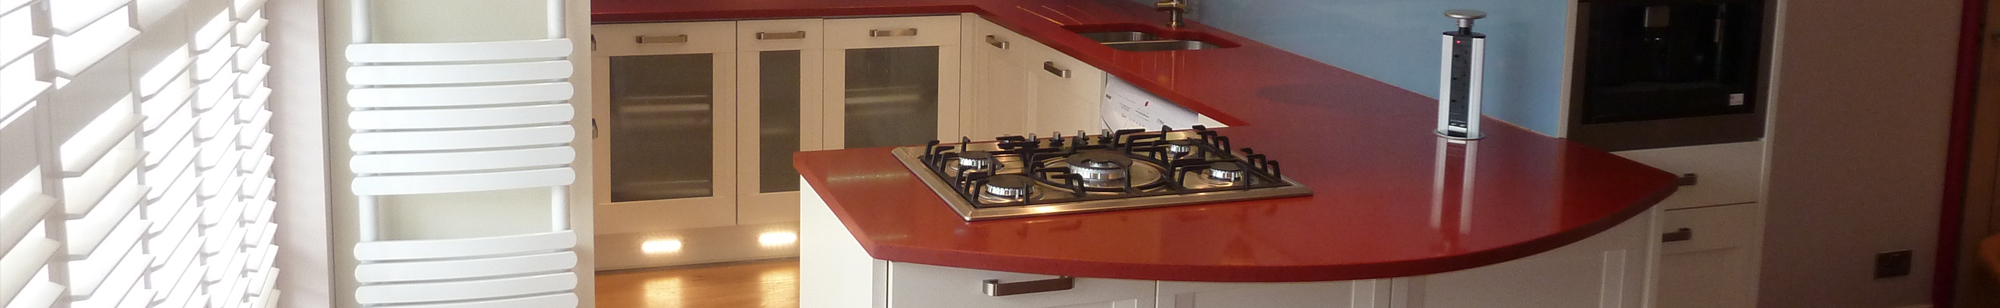 kitchen with red worktops